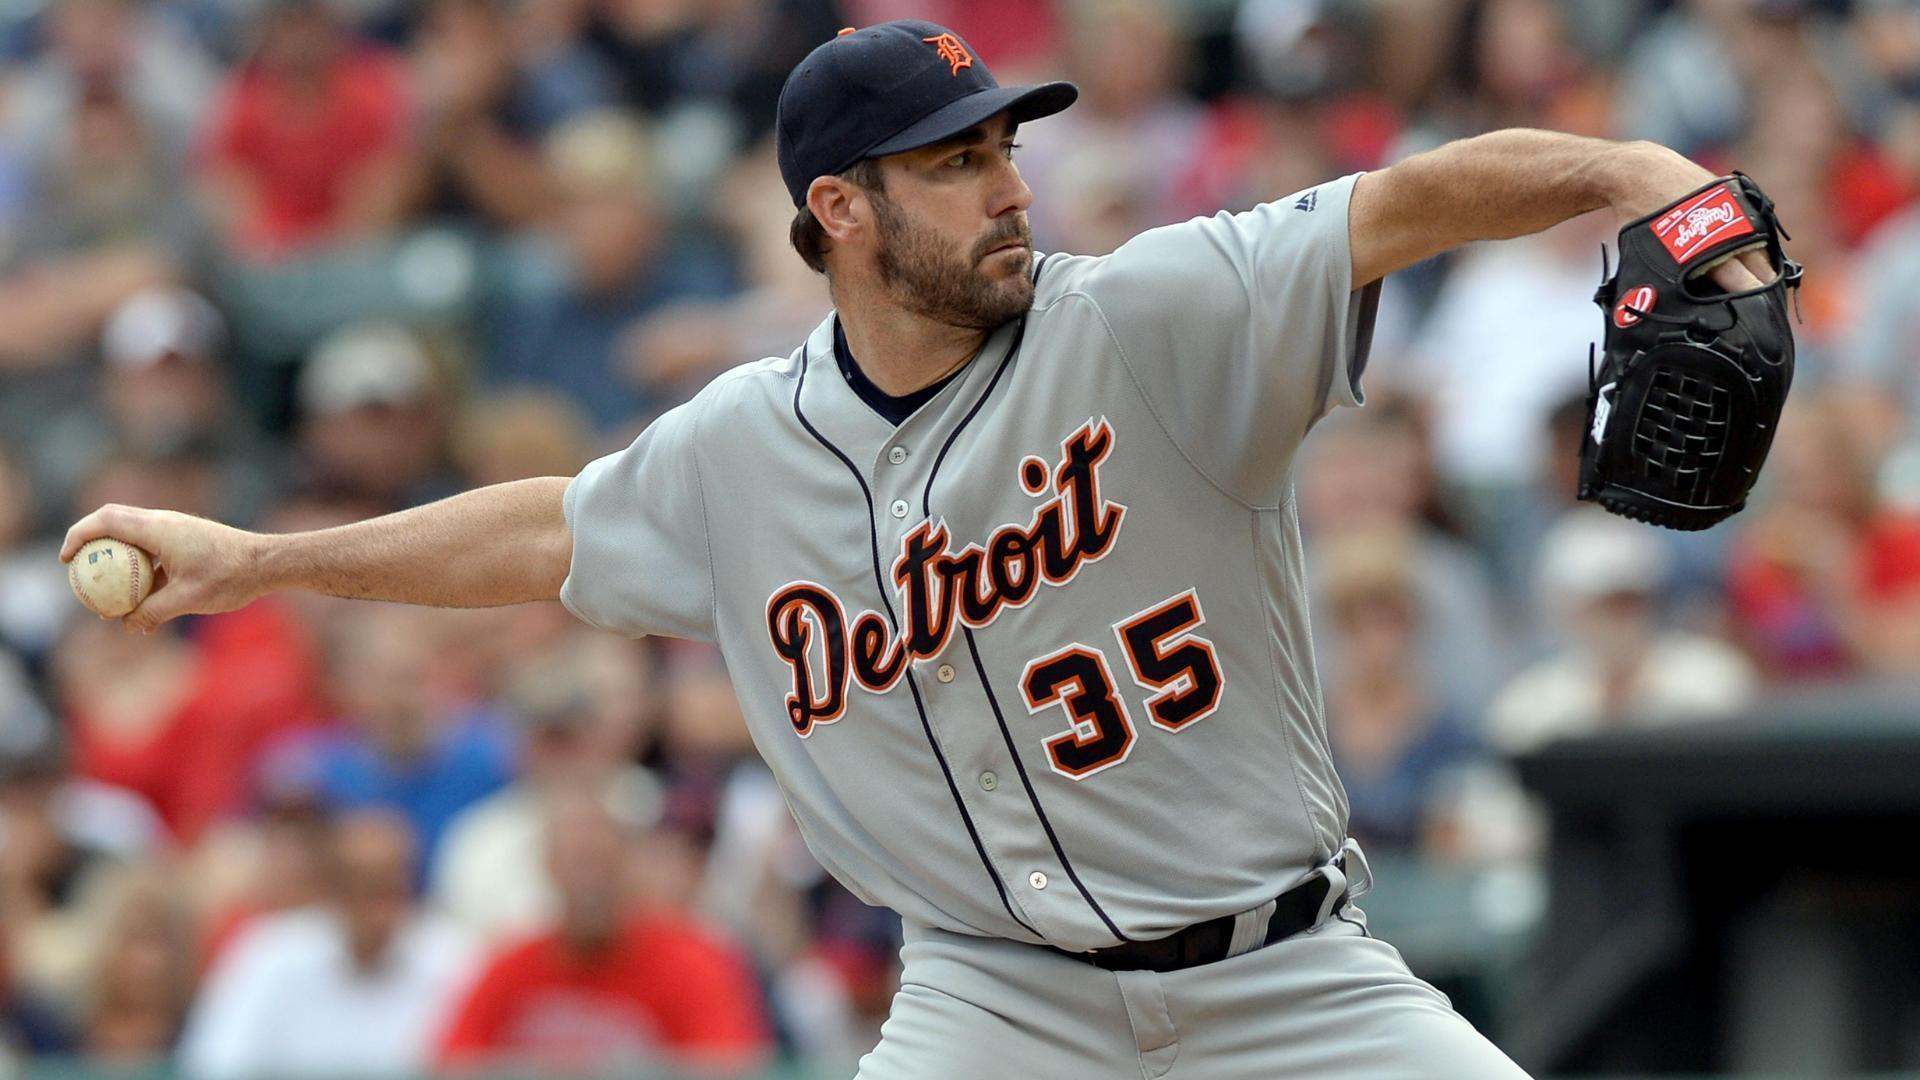 How iconic was Verlander's 2011 season?